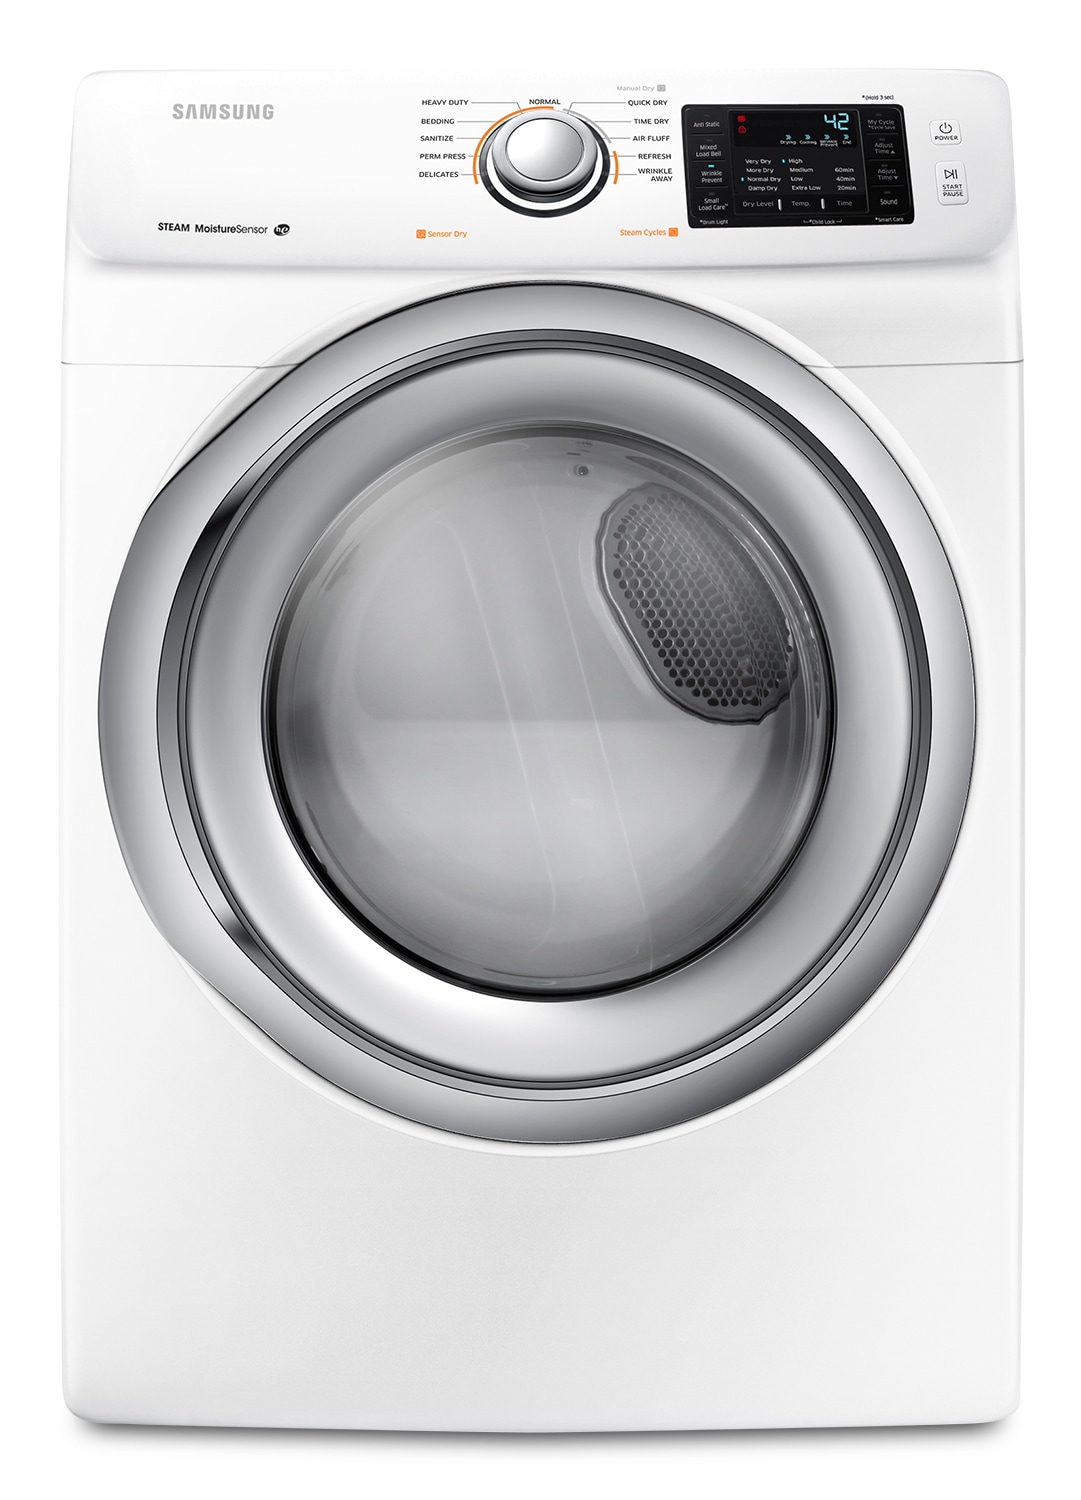 Washers and Dryers - Samsung White Front-Load Dryer - DV42H5200EW